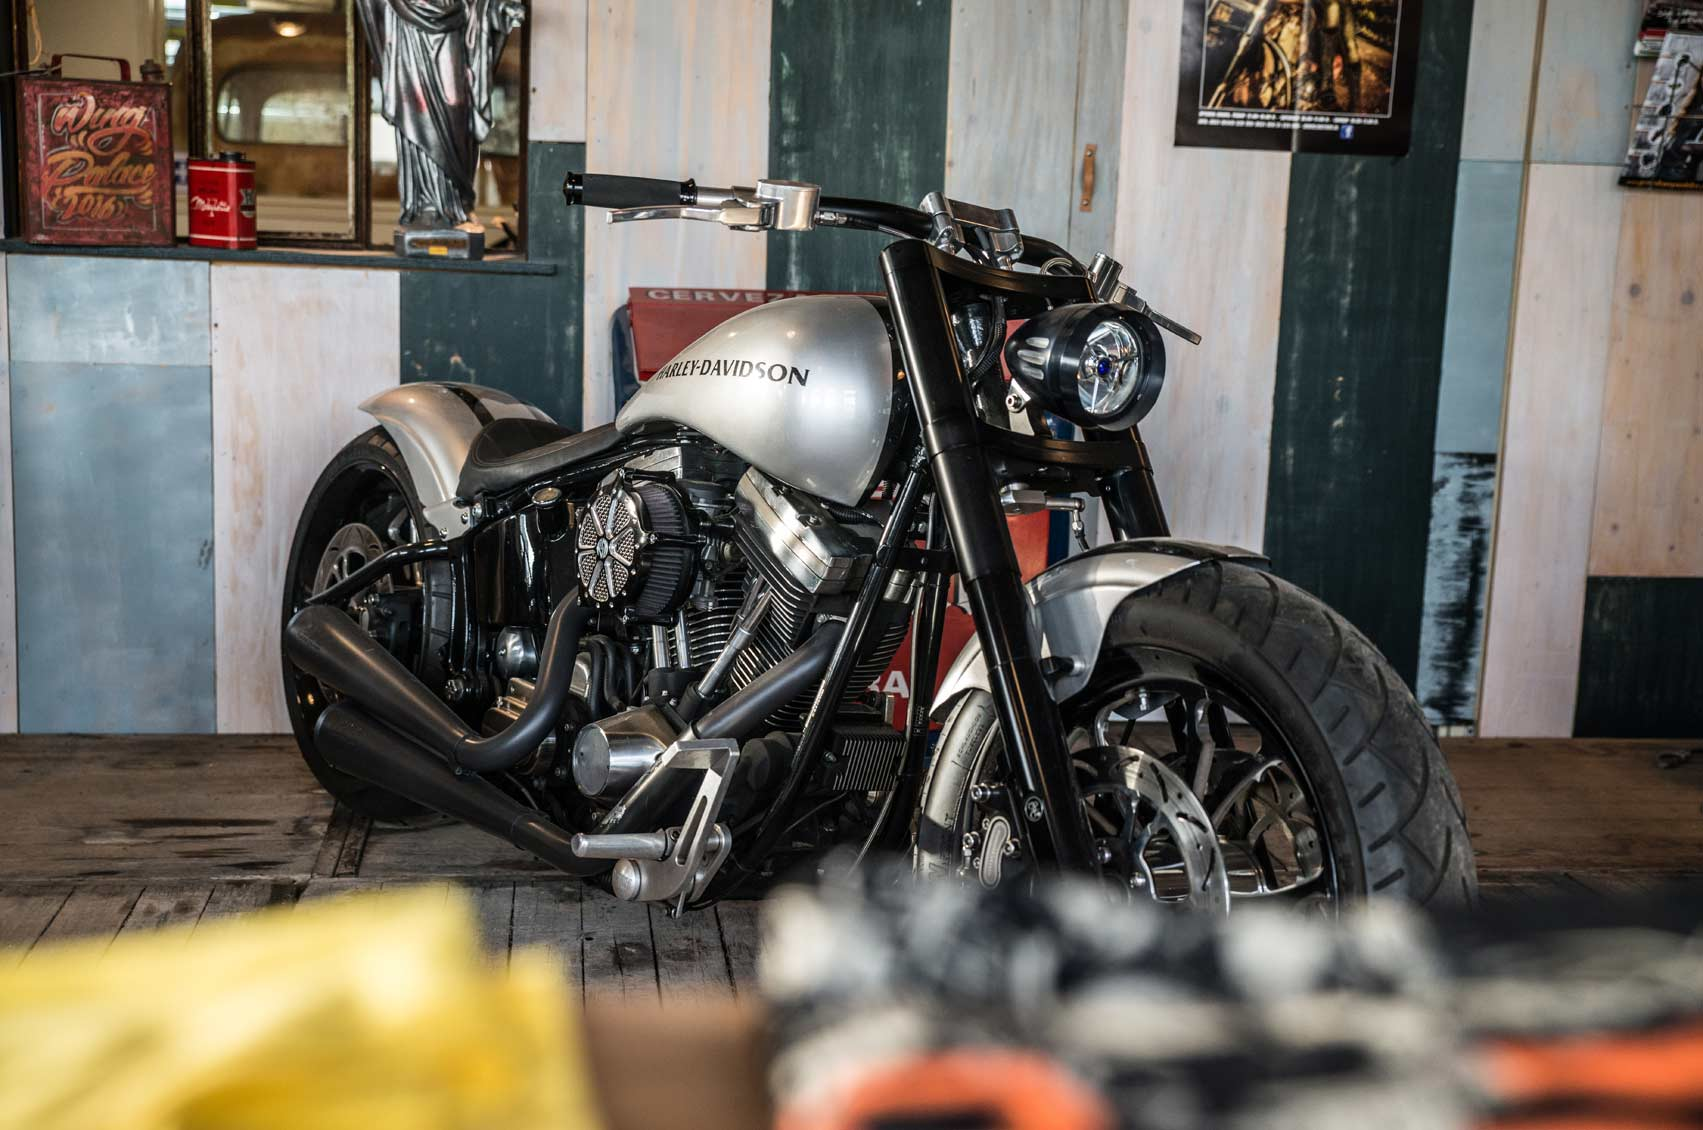 Wingpalace custom bikes and cars